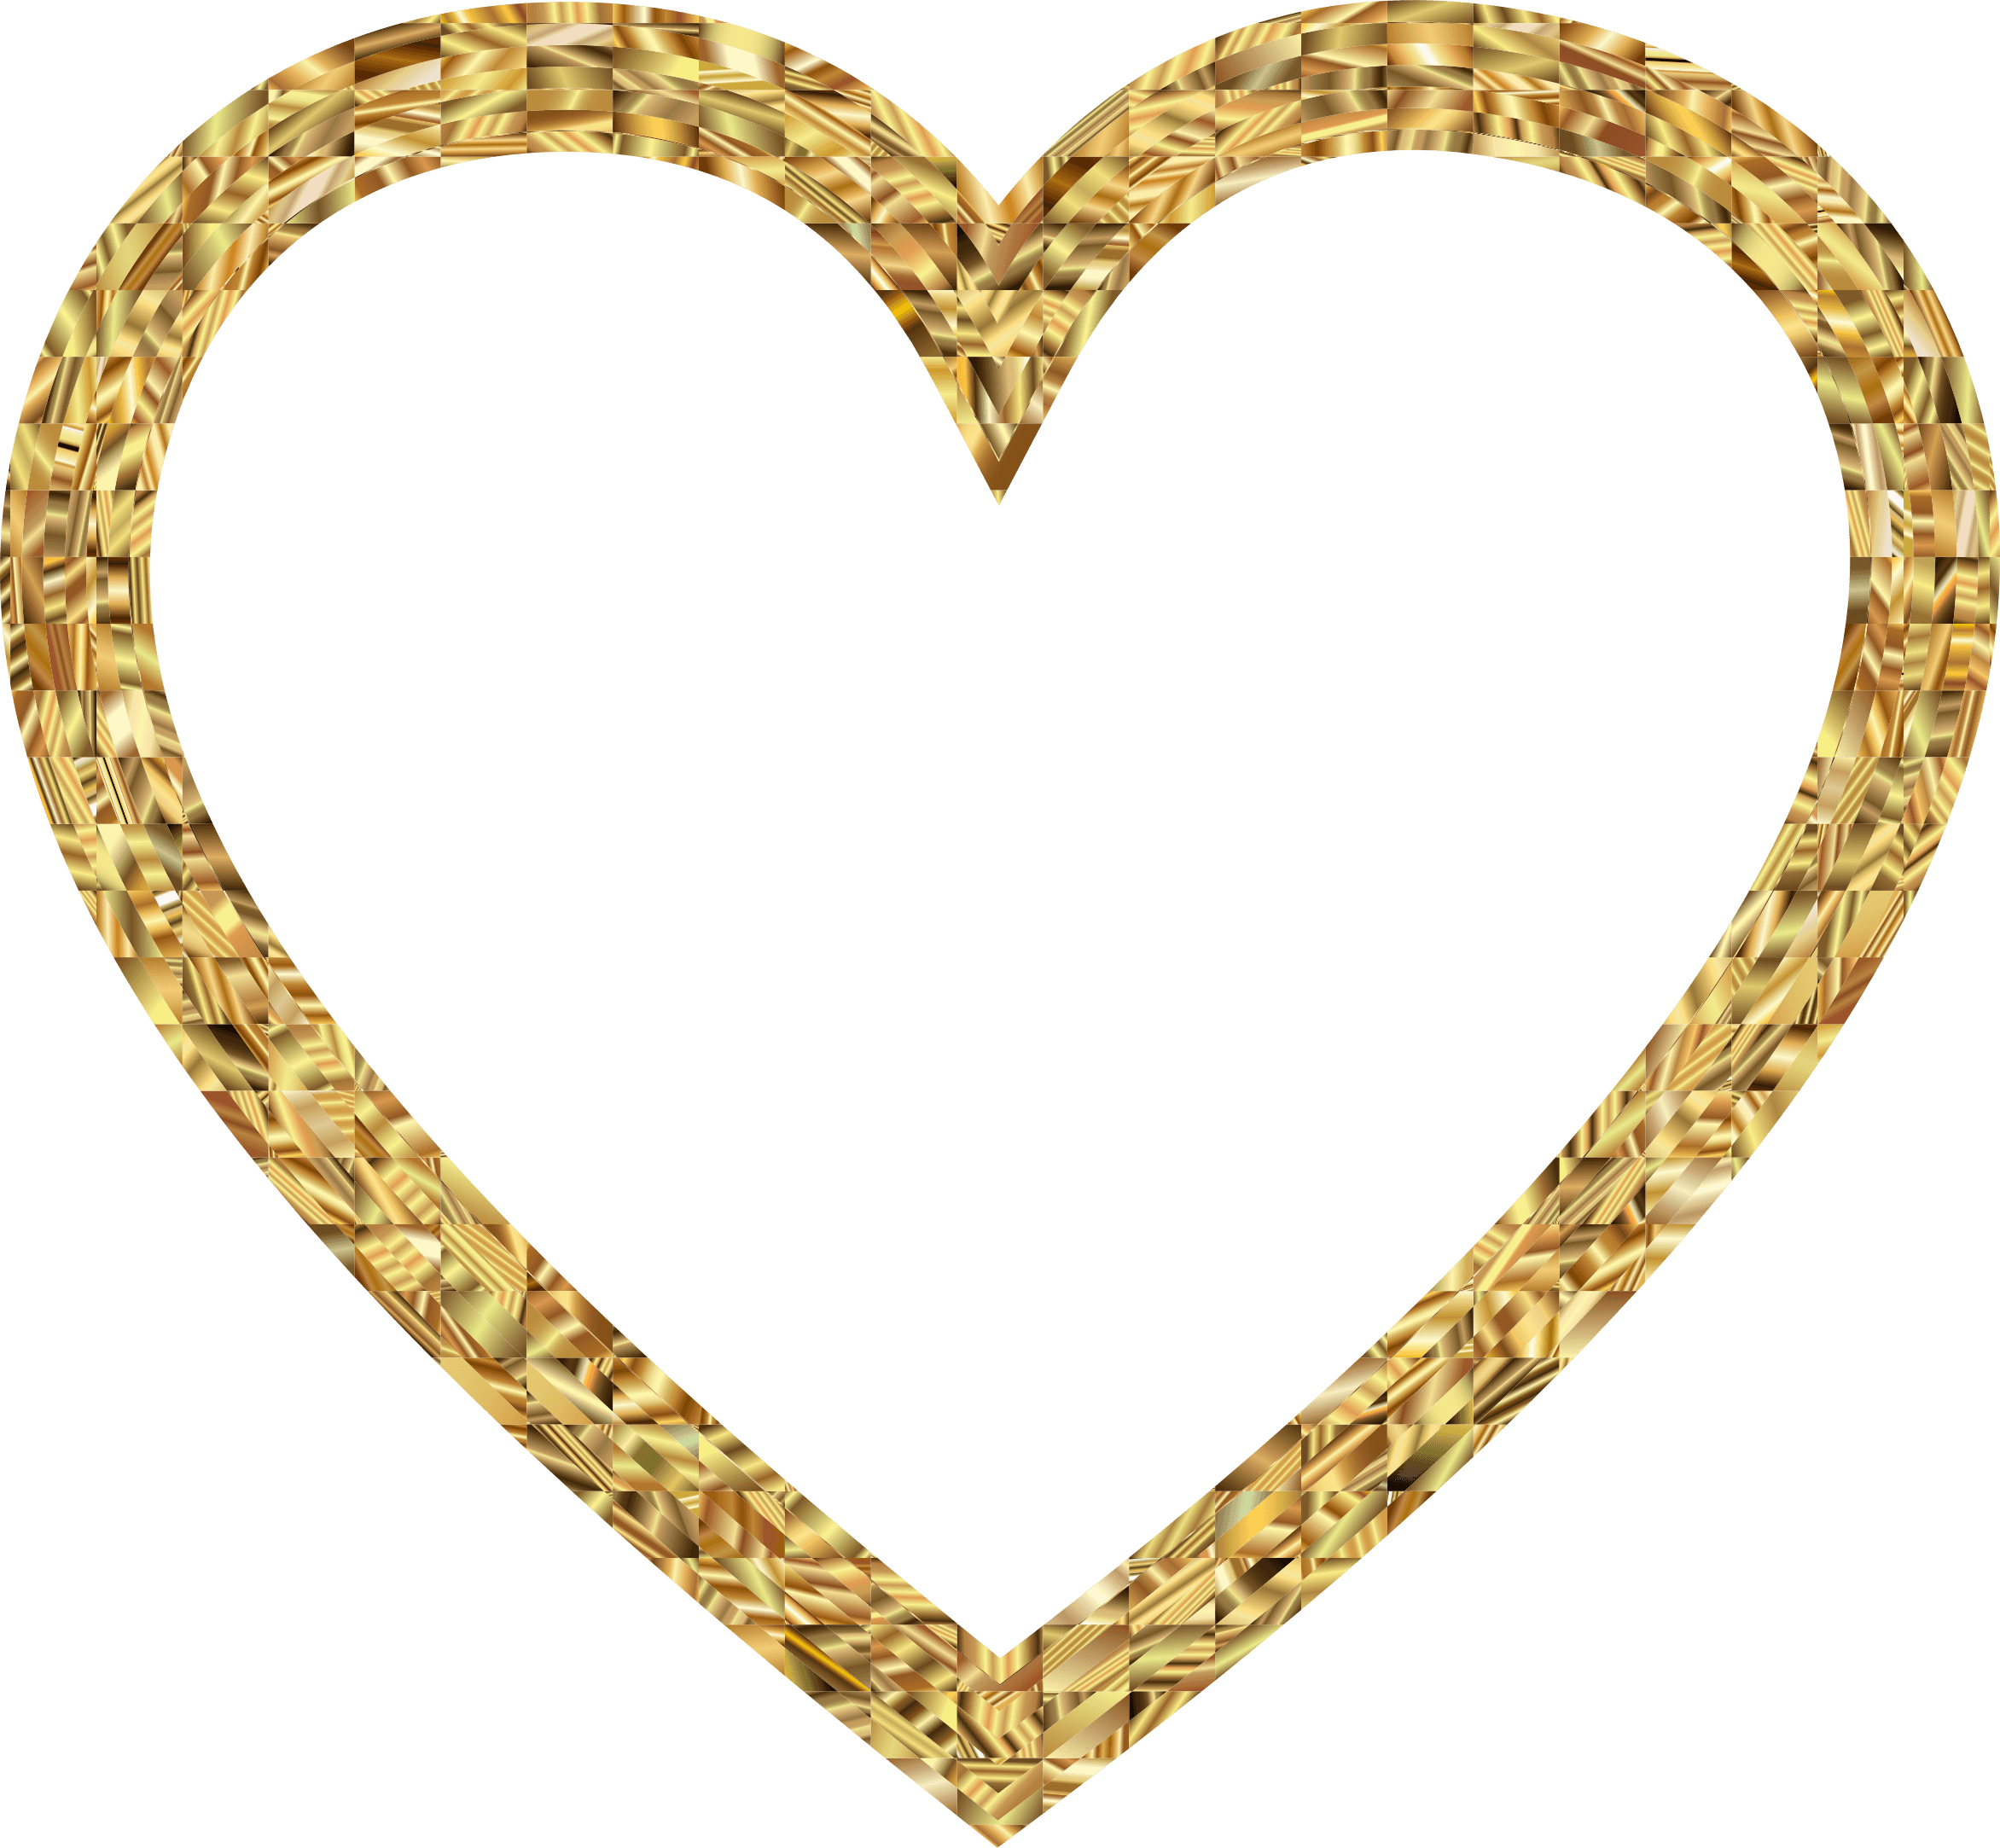 Hearts clipart man. Golden cliparts free collection